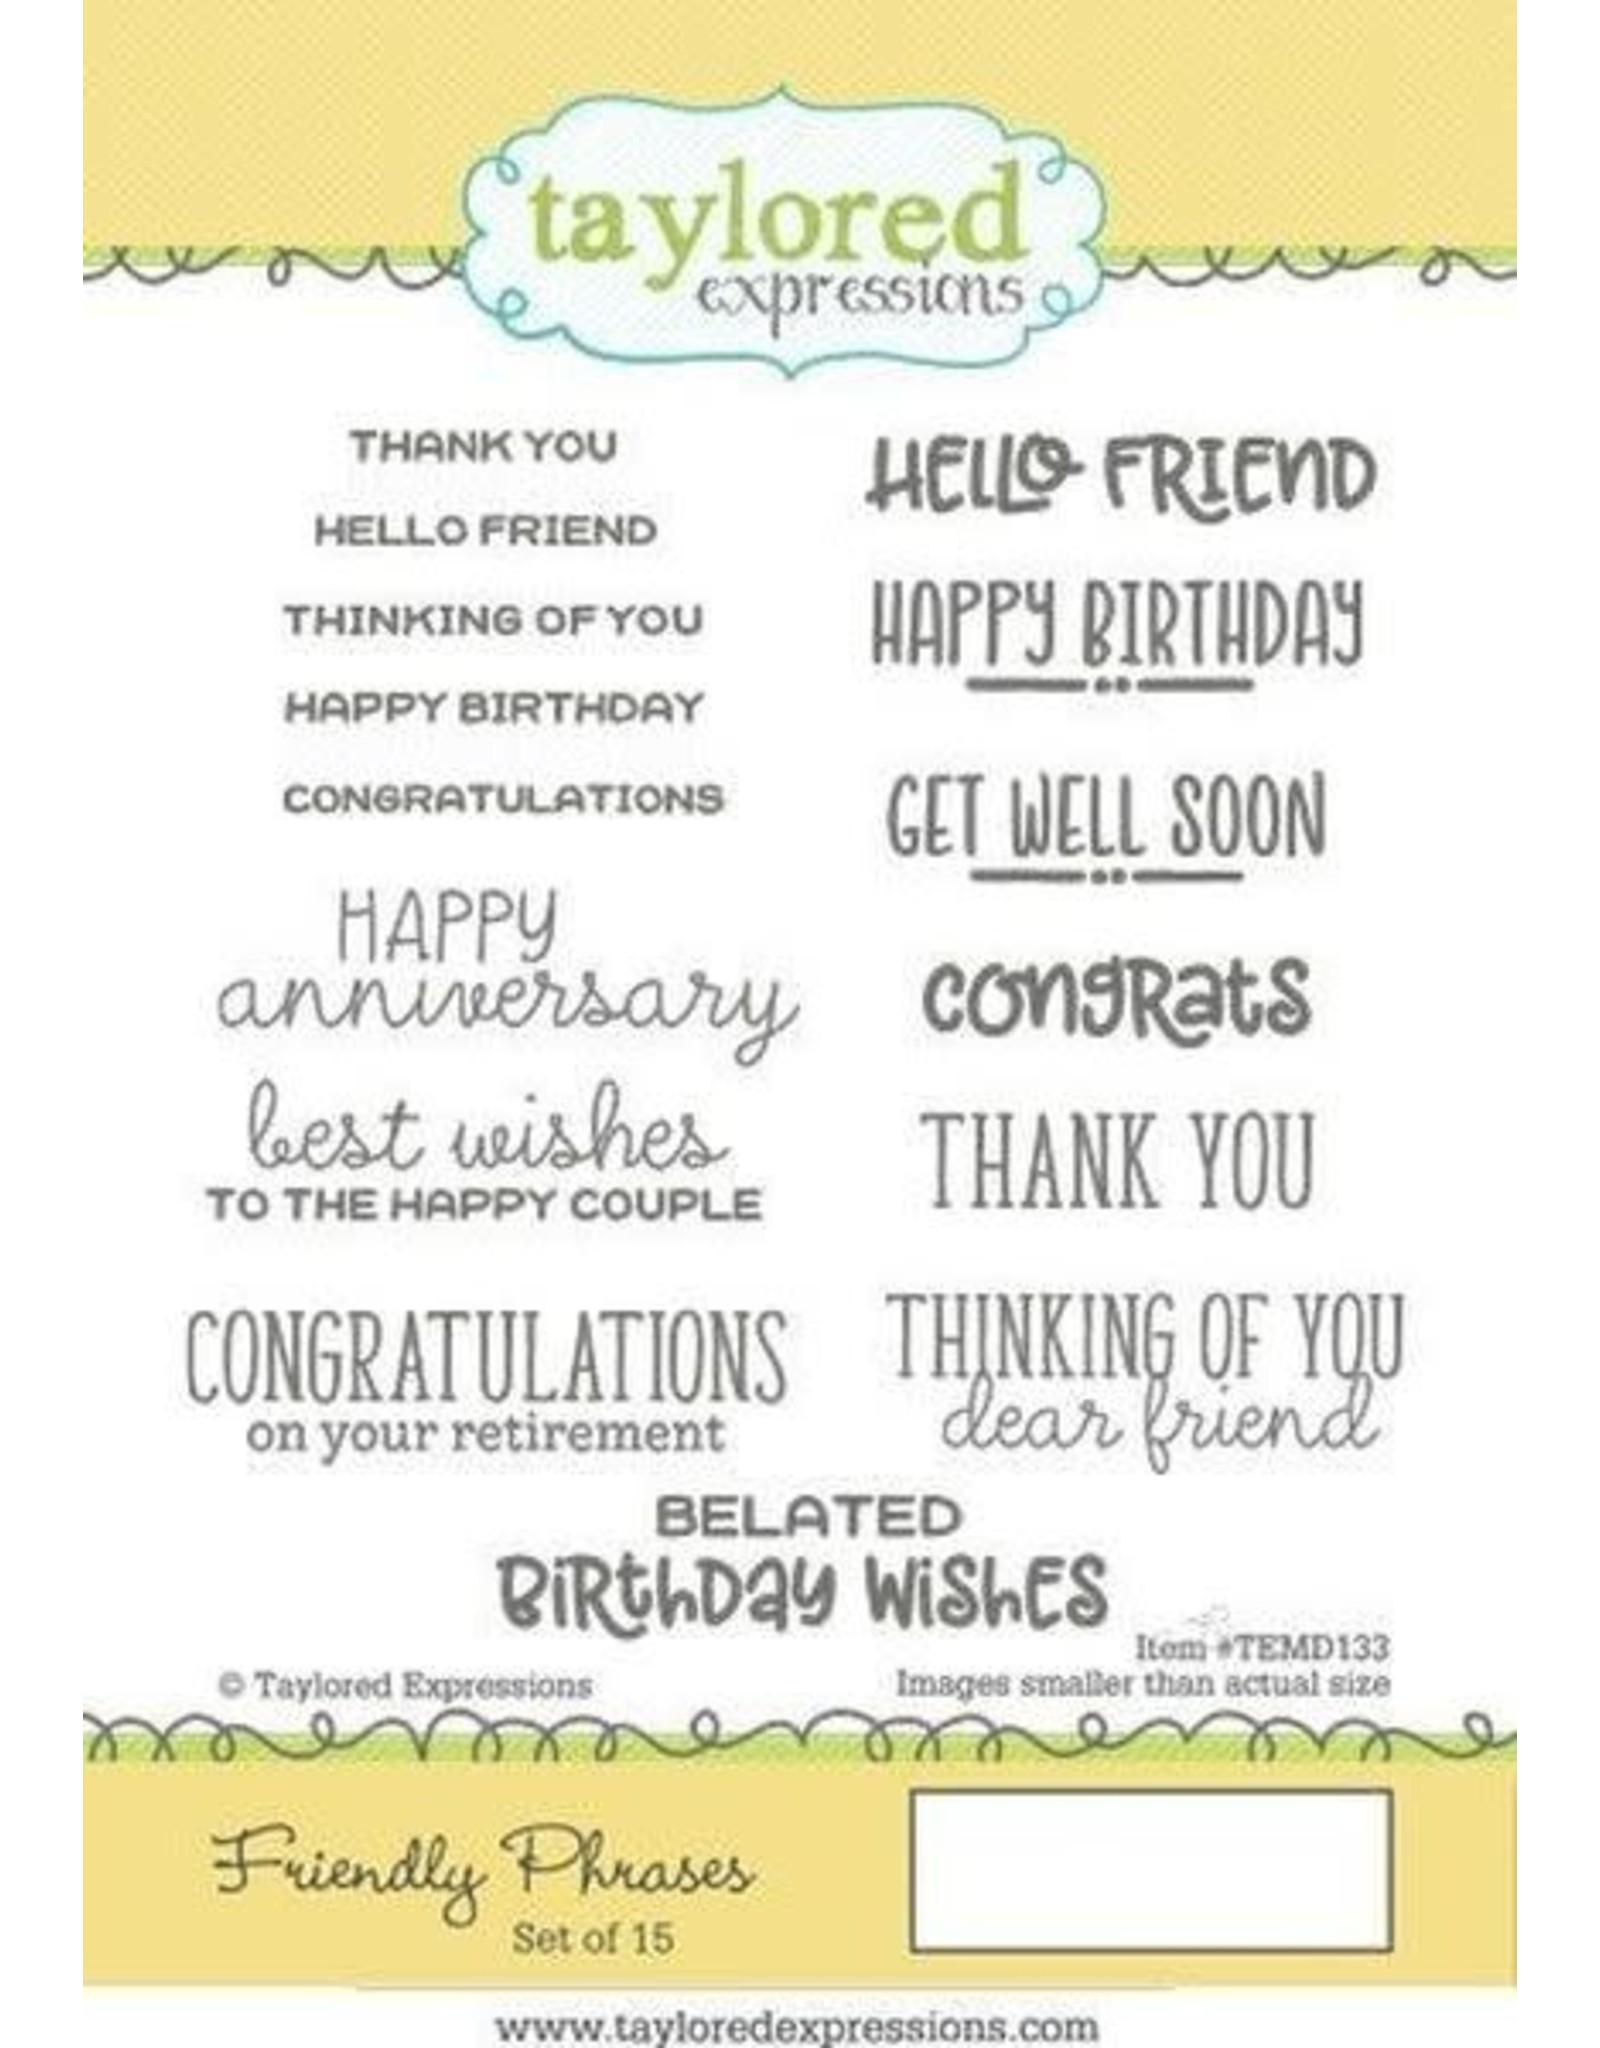 Friendly Phrases - Cling Stamp Set